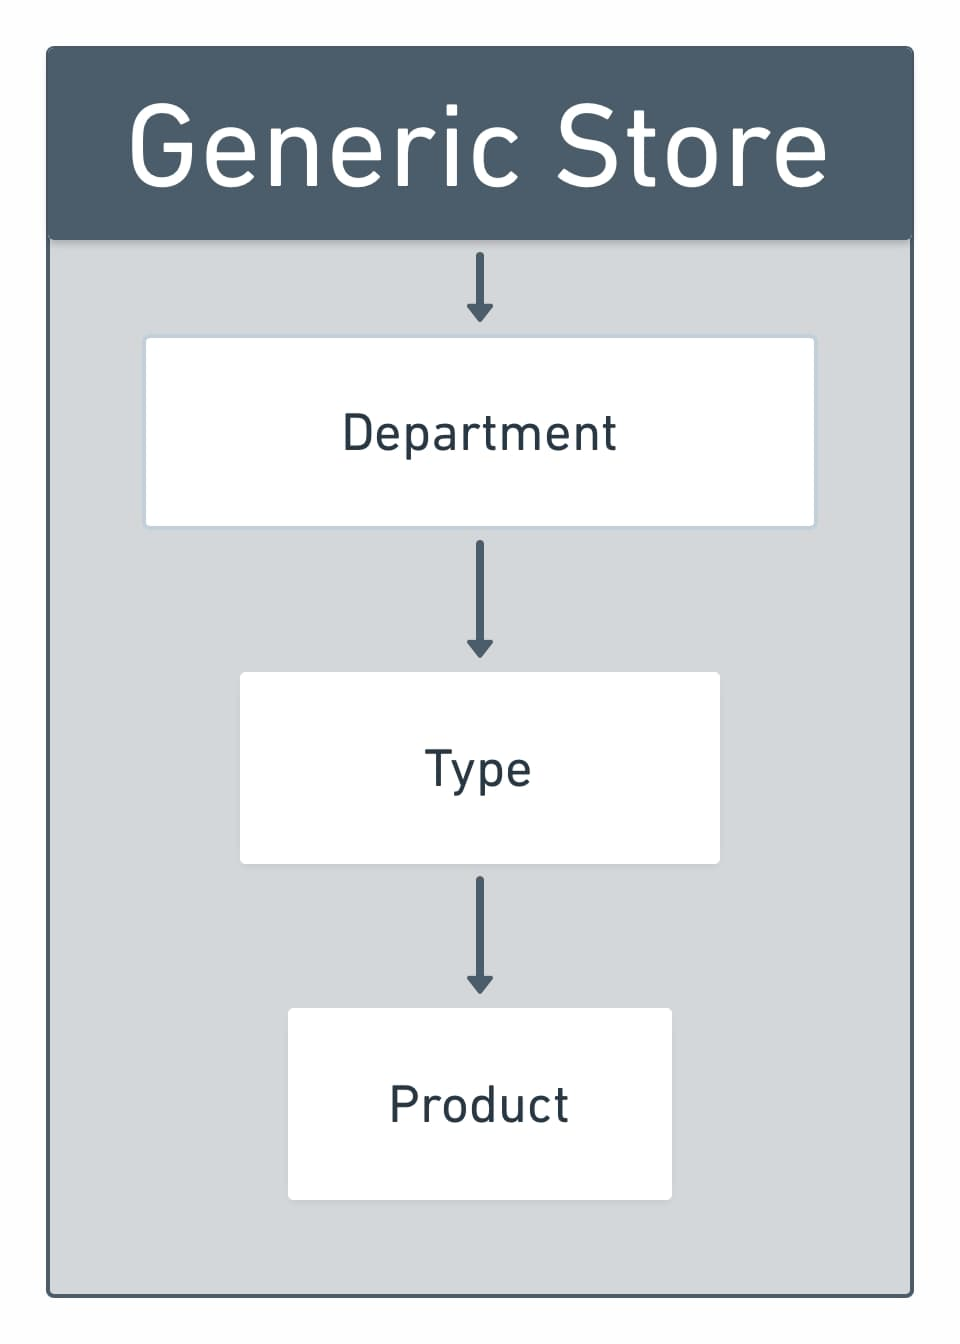 Visual URL structure with boxes and arrows. Generic Store > Department > Type > Product.